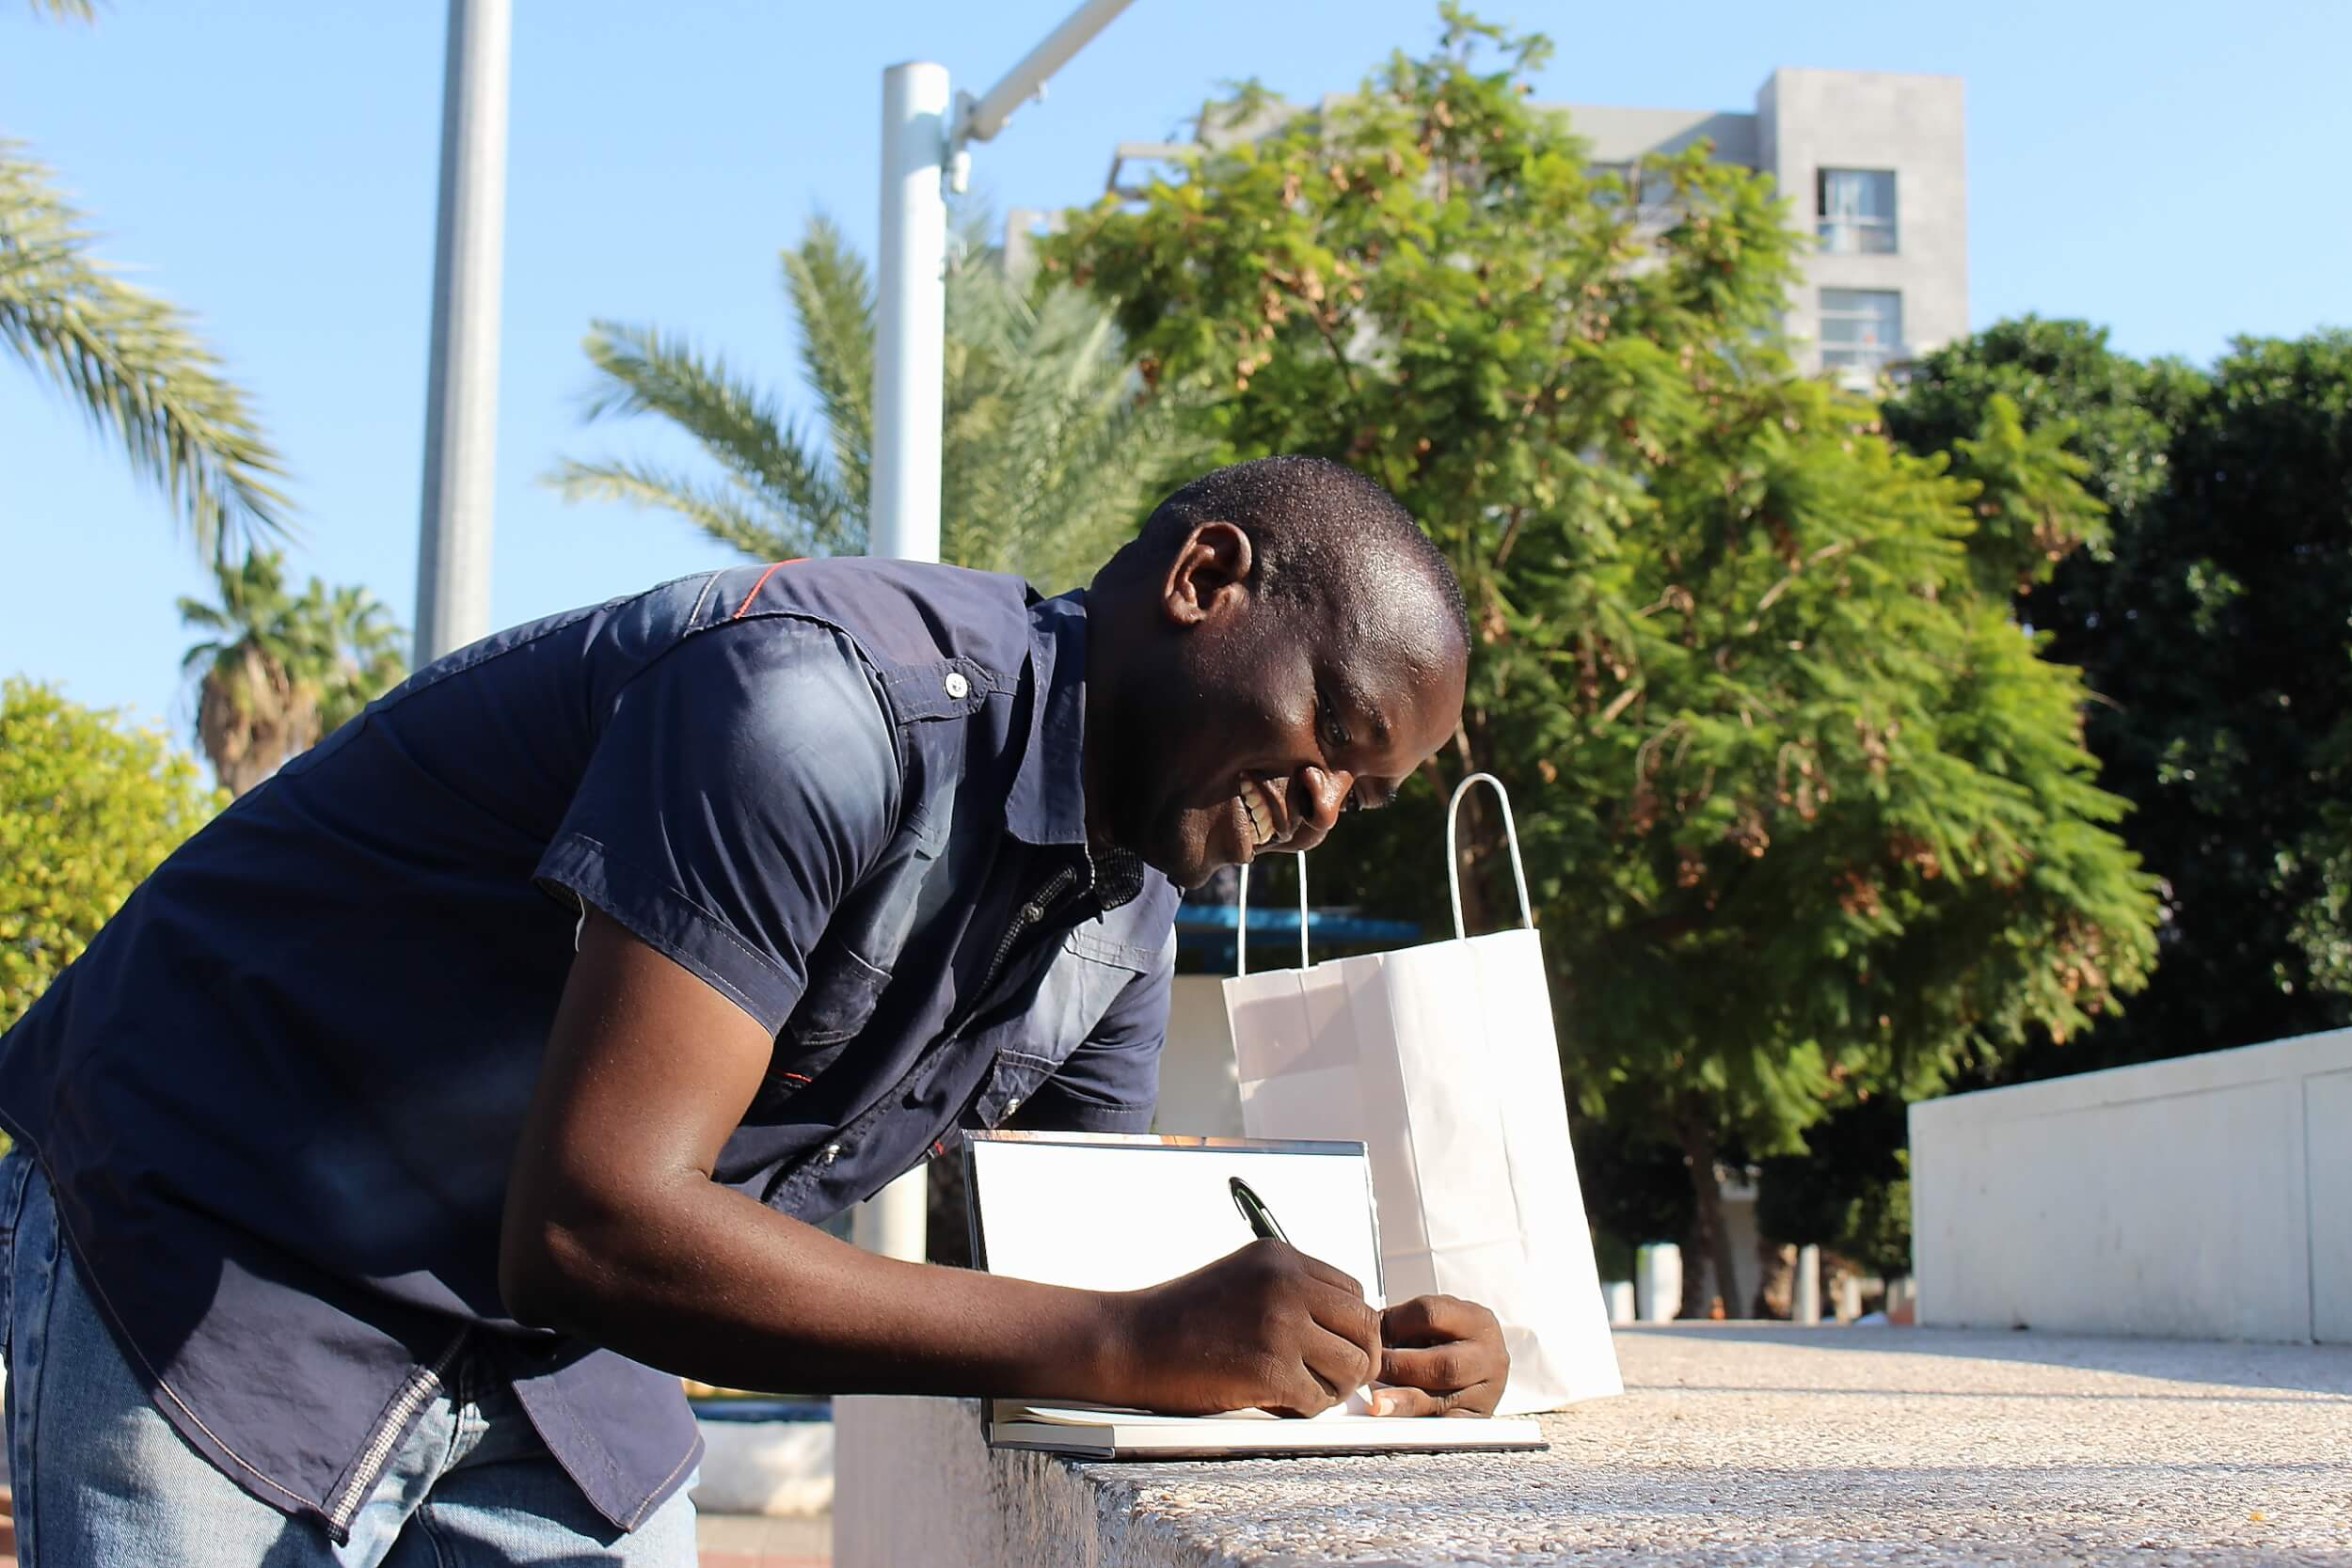 Adam Ahmad makes notes in his book, The Nightmare of the Exile, a book where he documents the racism he has experienced in Israel as a Sudanese refugee. (Photo: Matthew Vickery)